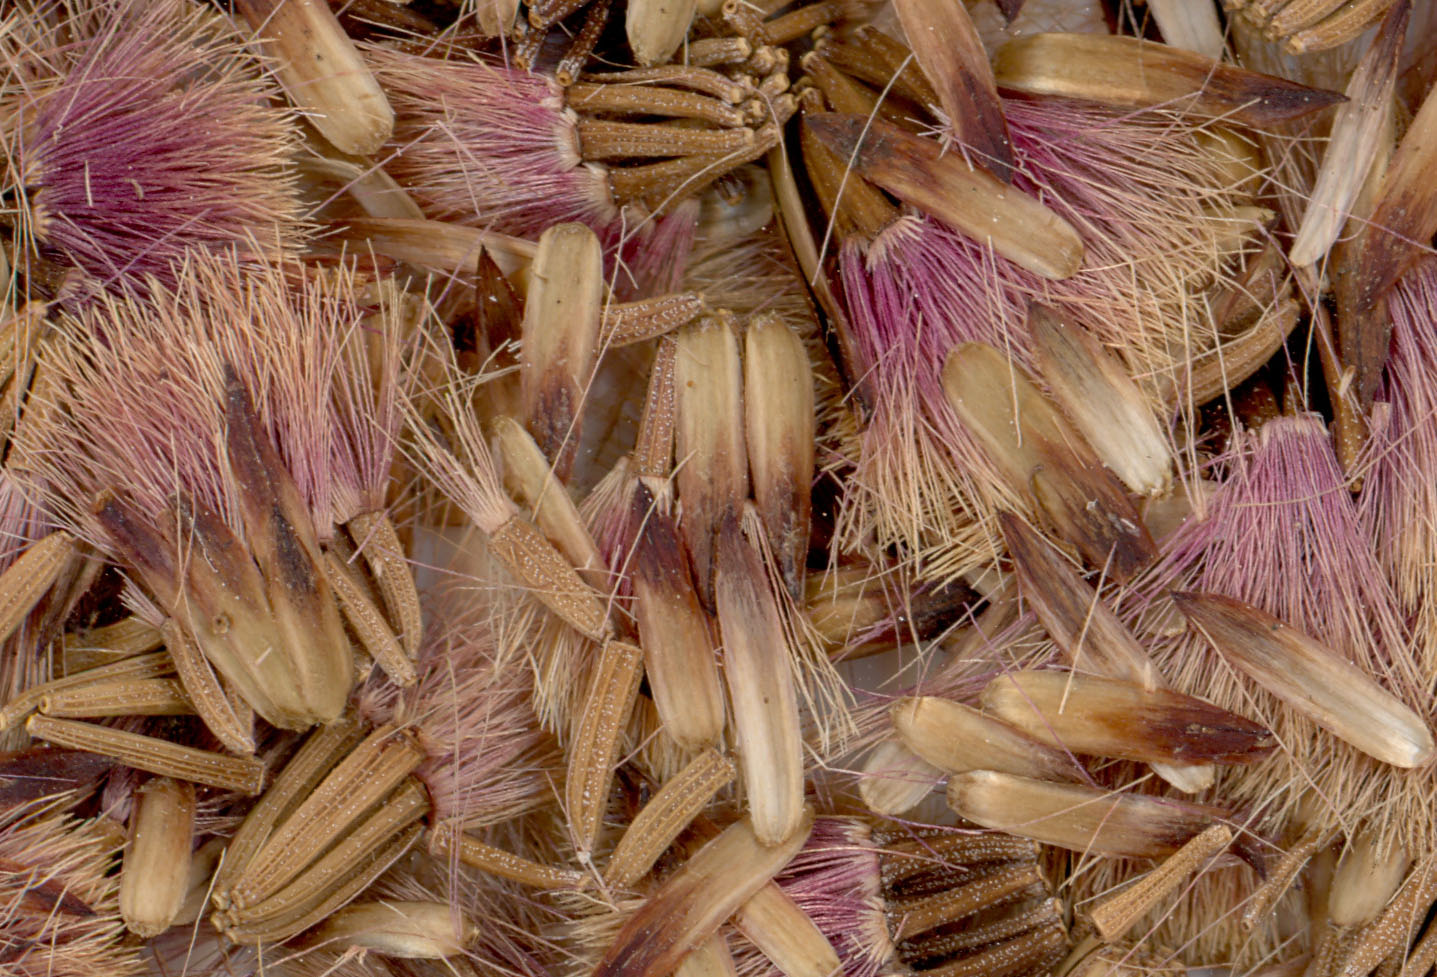 V. lettermannii prior to threshing. The beautiful maroon-colored comas were difficult to remove.